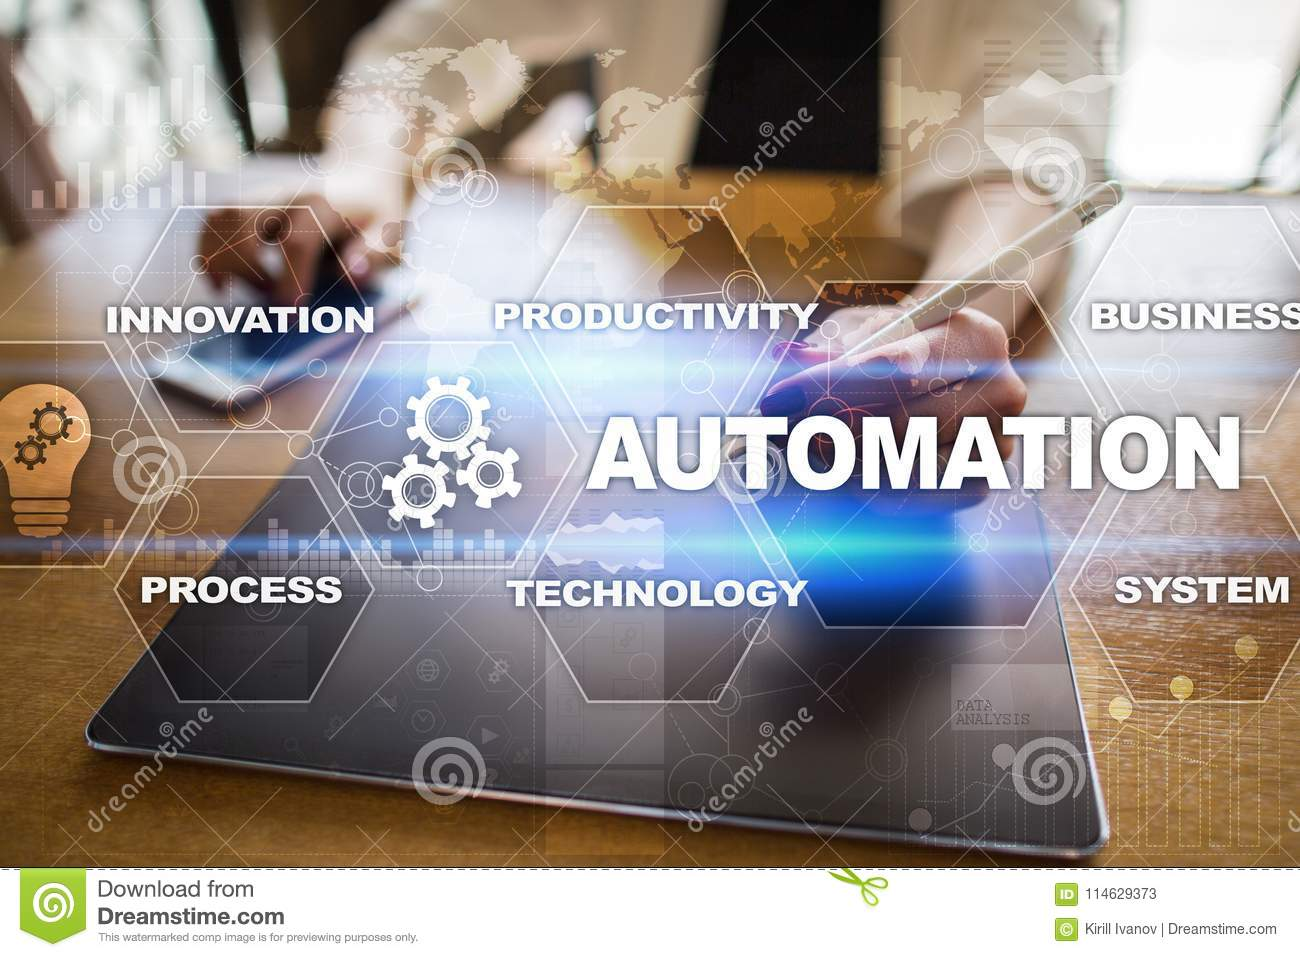 Automation concept as an innovation, improving productivity in technology and business processes.